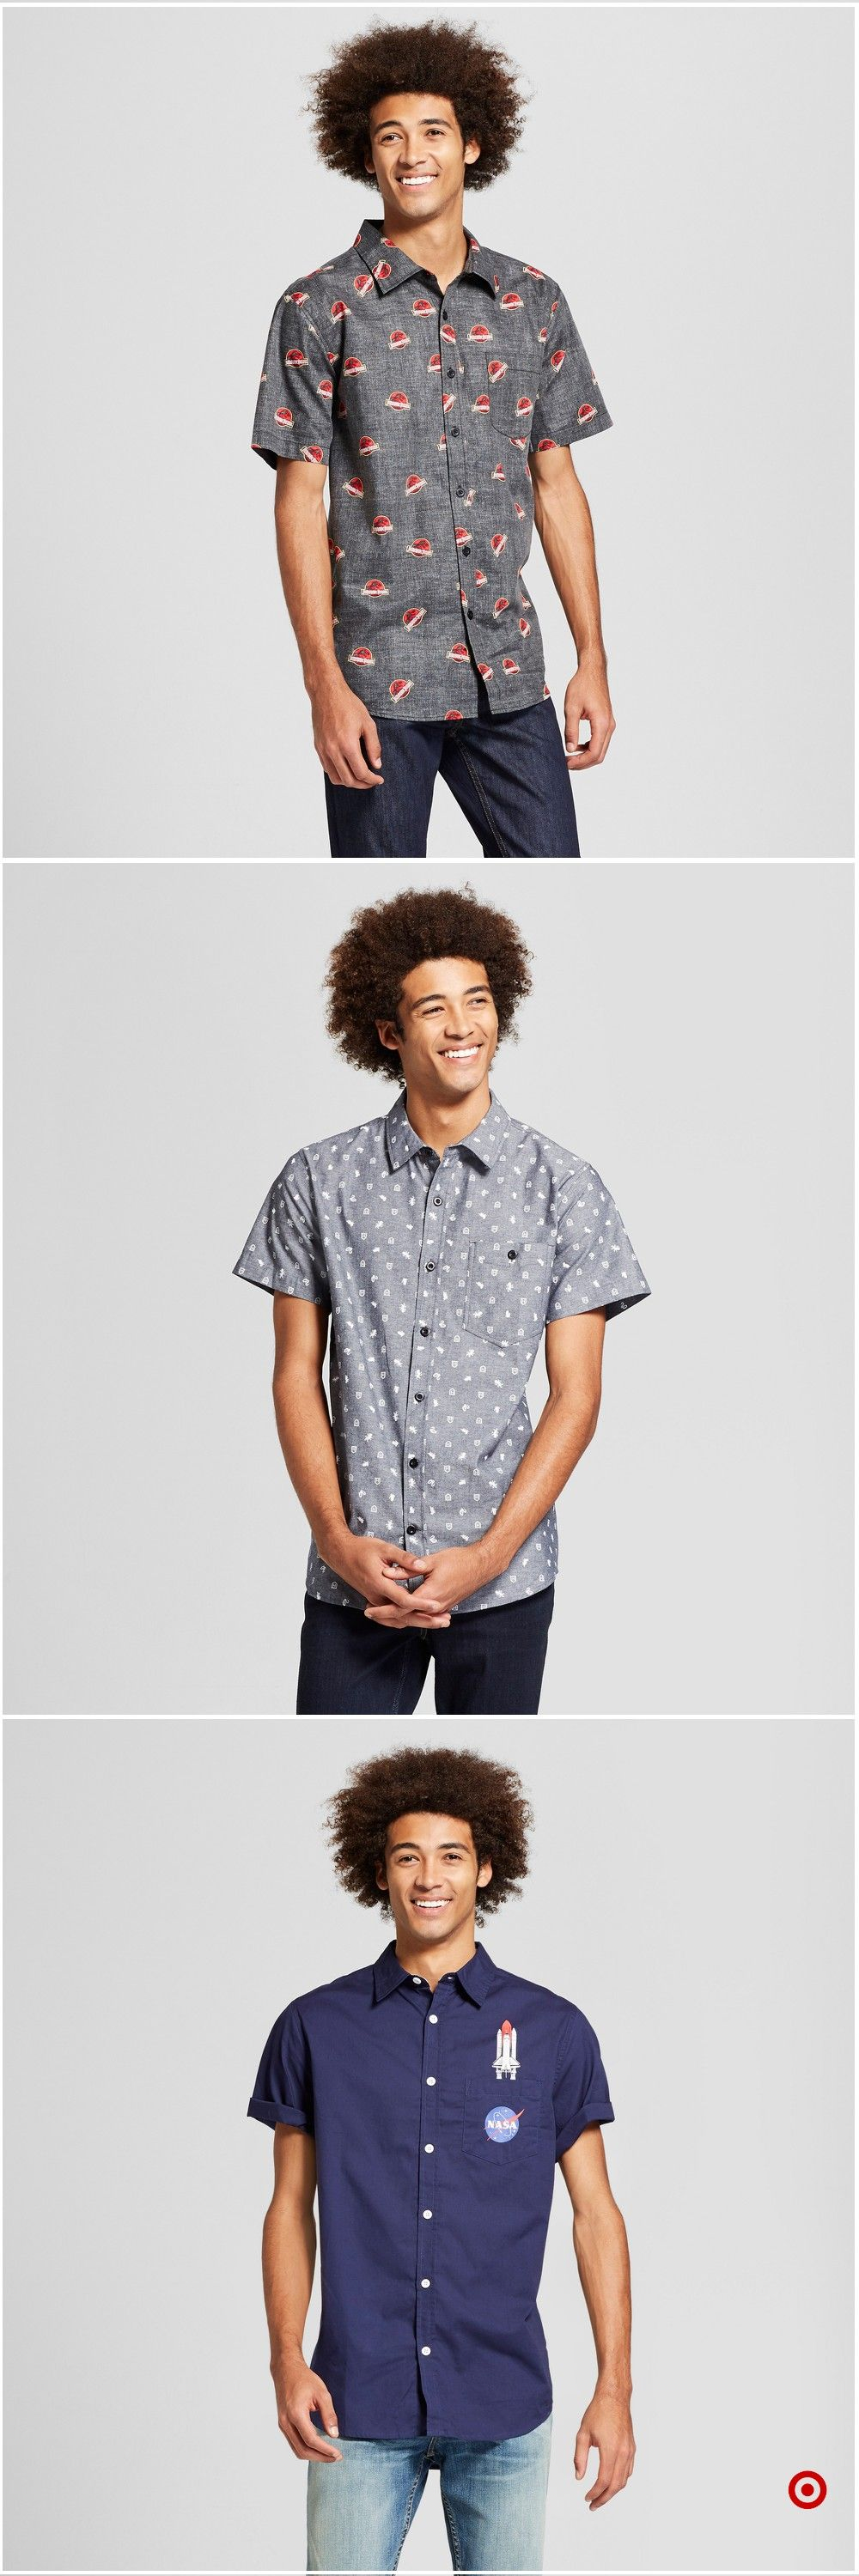 2f9c2c9ea2 Shop Target for button down shirts you will love at great low prices. Free  shipping on orders of $35+ or free same-day pick-up in store.